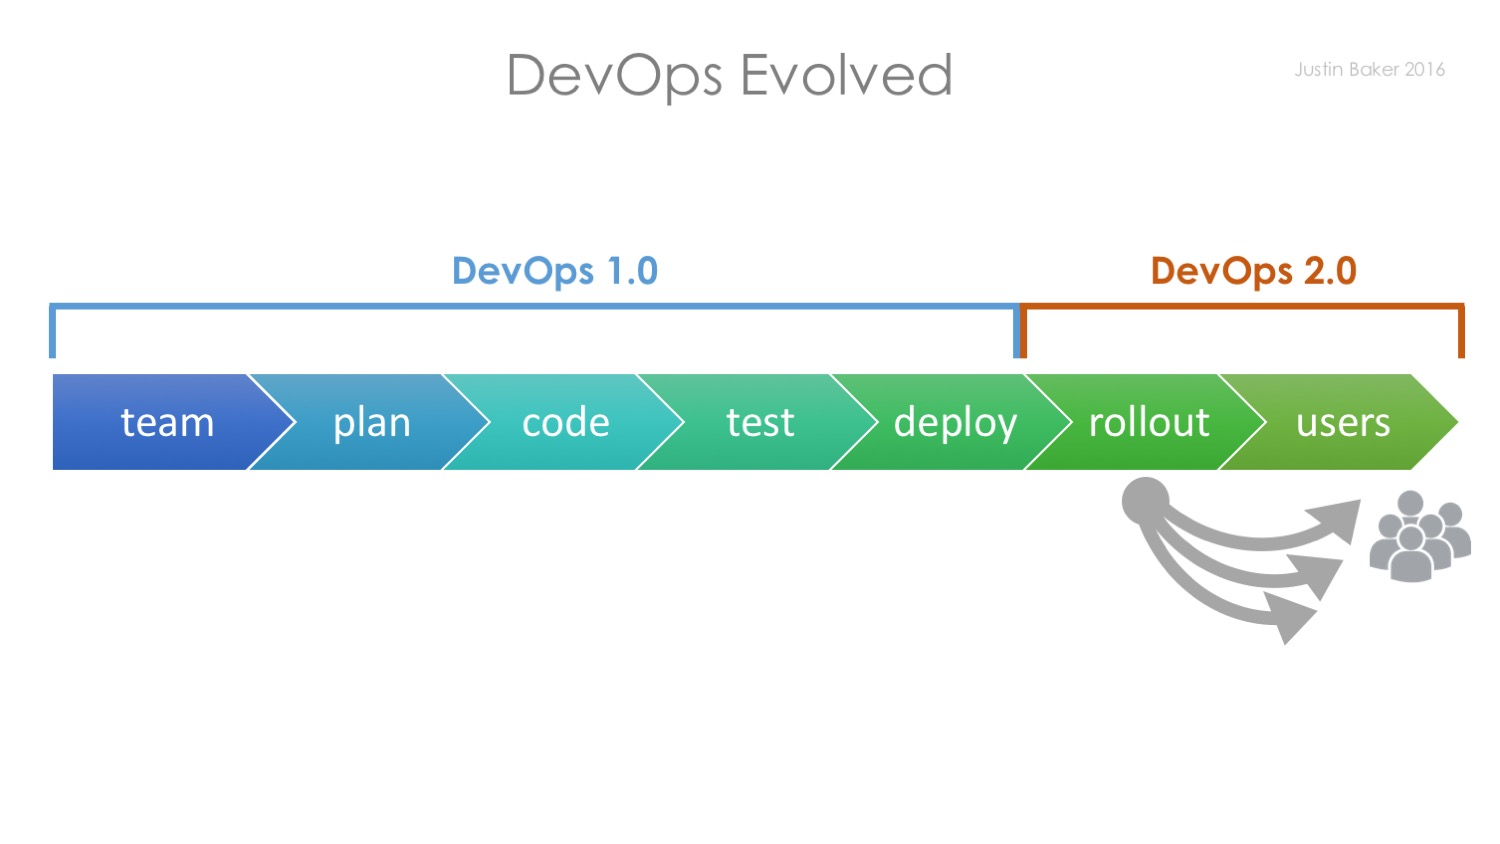 DevOps 1.0 and DevOps 2.0 LaunchDarkly Feature Toggles Feature Flags